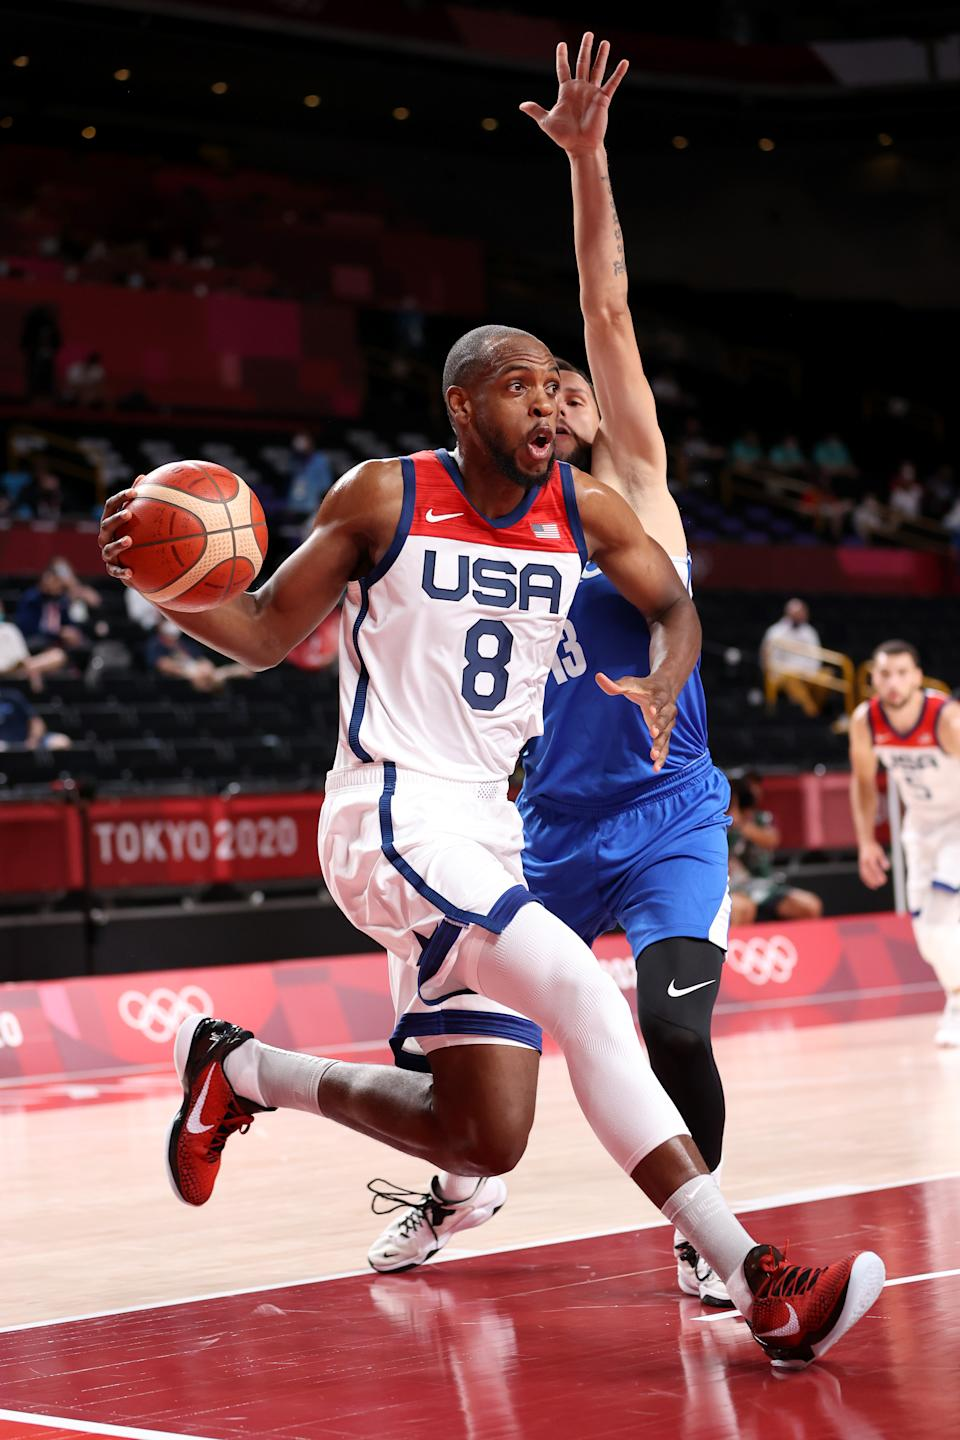 <p>SAITAMA, JAPAN - JULY 31: Khris Middleton #8 of Team United States drives to the basket Czech Republic during the first half of a Men's Basketball Preliminary Round Group A game on day eight of the Tokyo 2020 Olympic Games at Saitama Super Arena on July 31, 2021 in Saitama, Japan. (Photo by Gregory Shamus/Getty Images)</p>